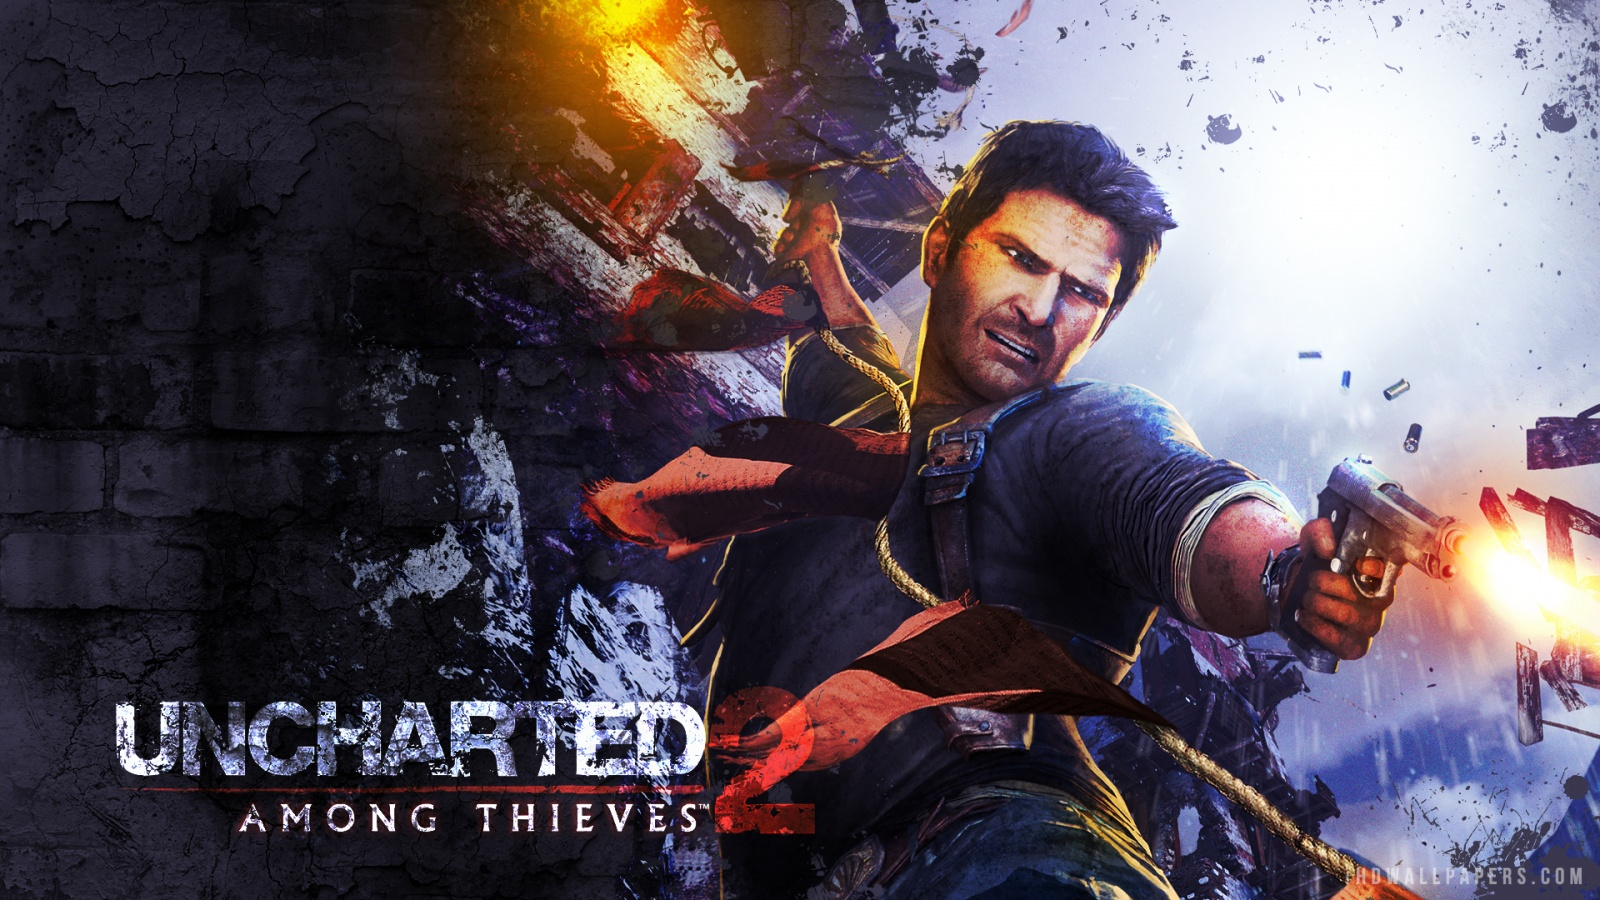 Uncharted 2 Among Thieves HD Wallpaper   iHD Wallpapers 1600x900